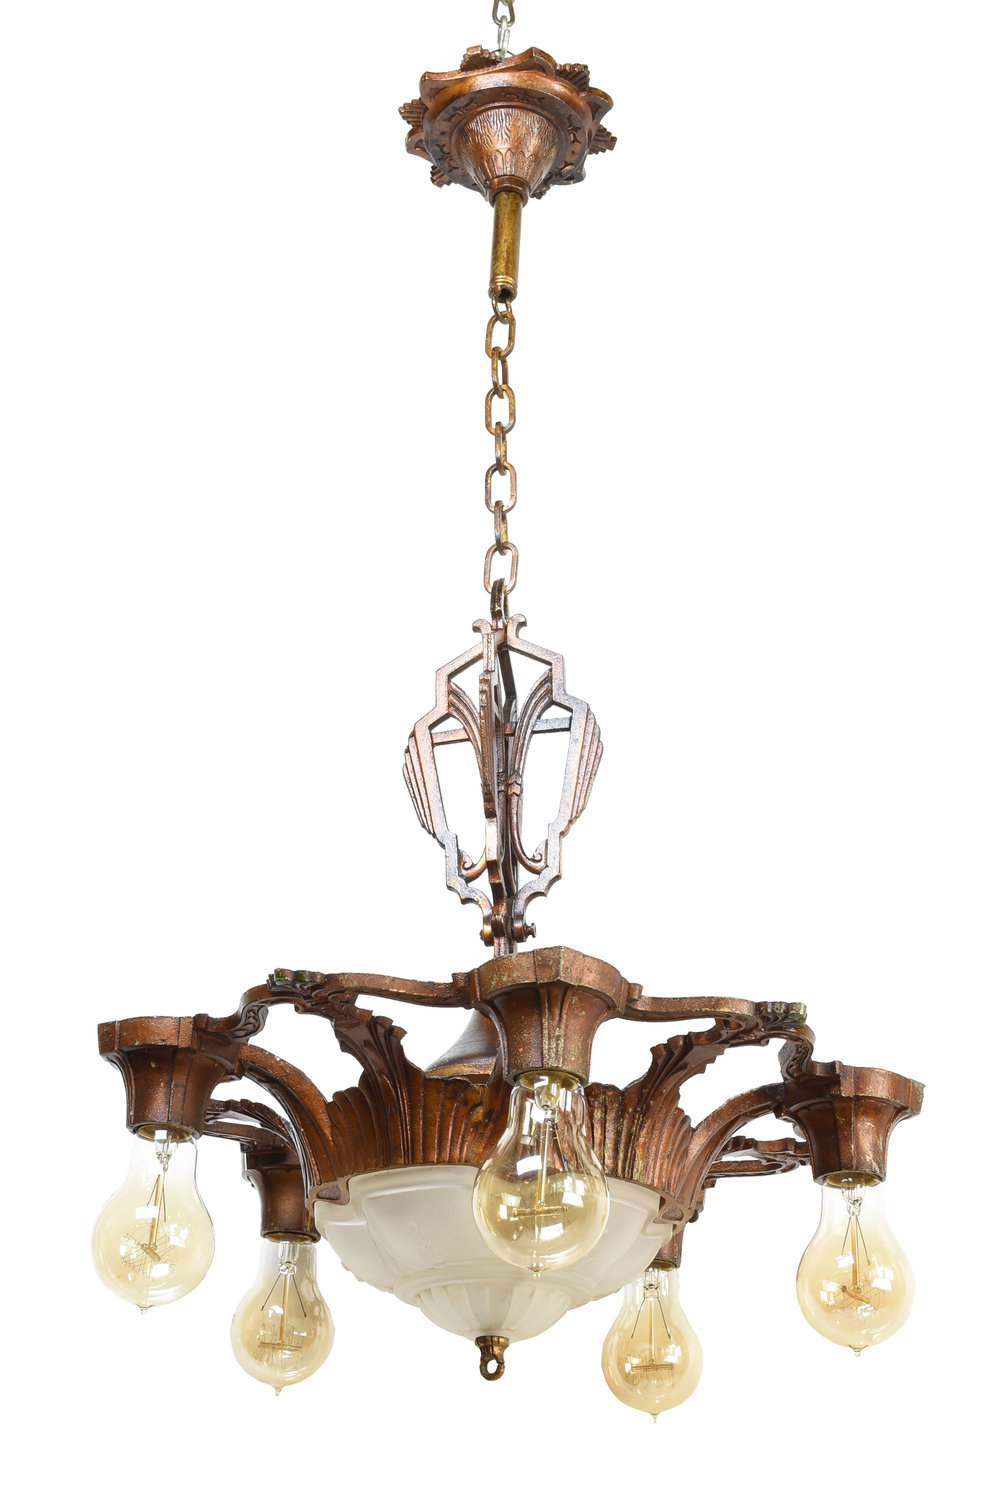 46637-painted-aluminum-chandelier-with-central-light-and-5-side-lights-full-ch.jpg